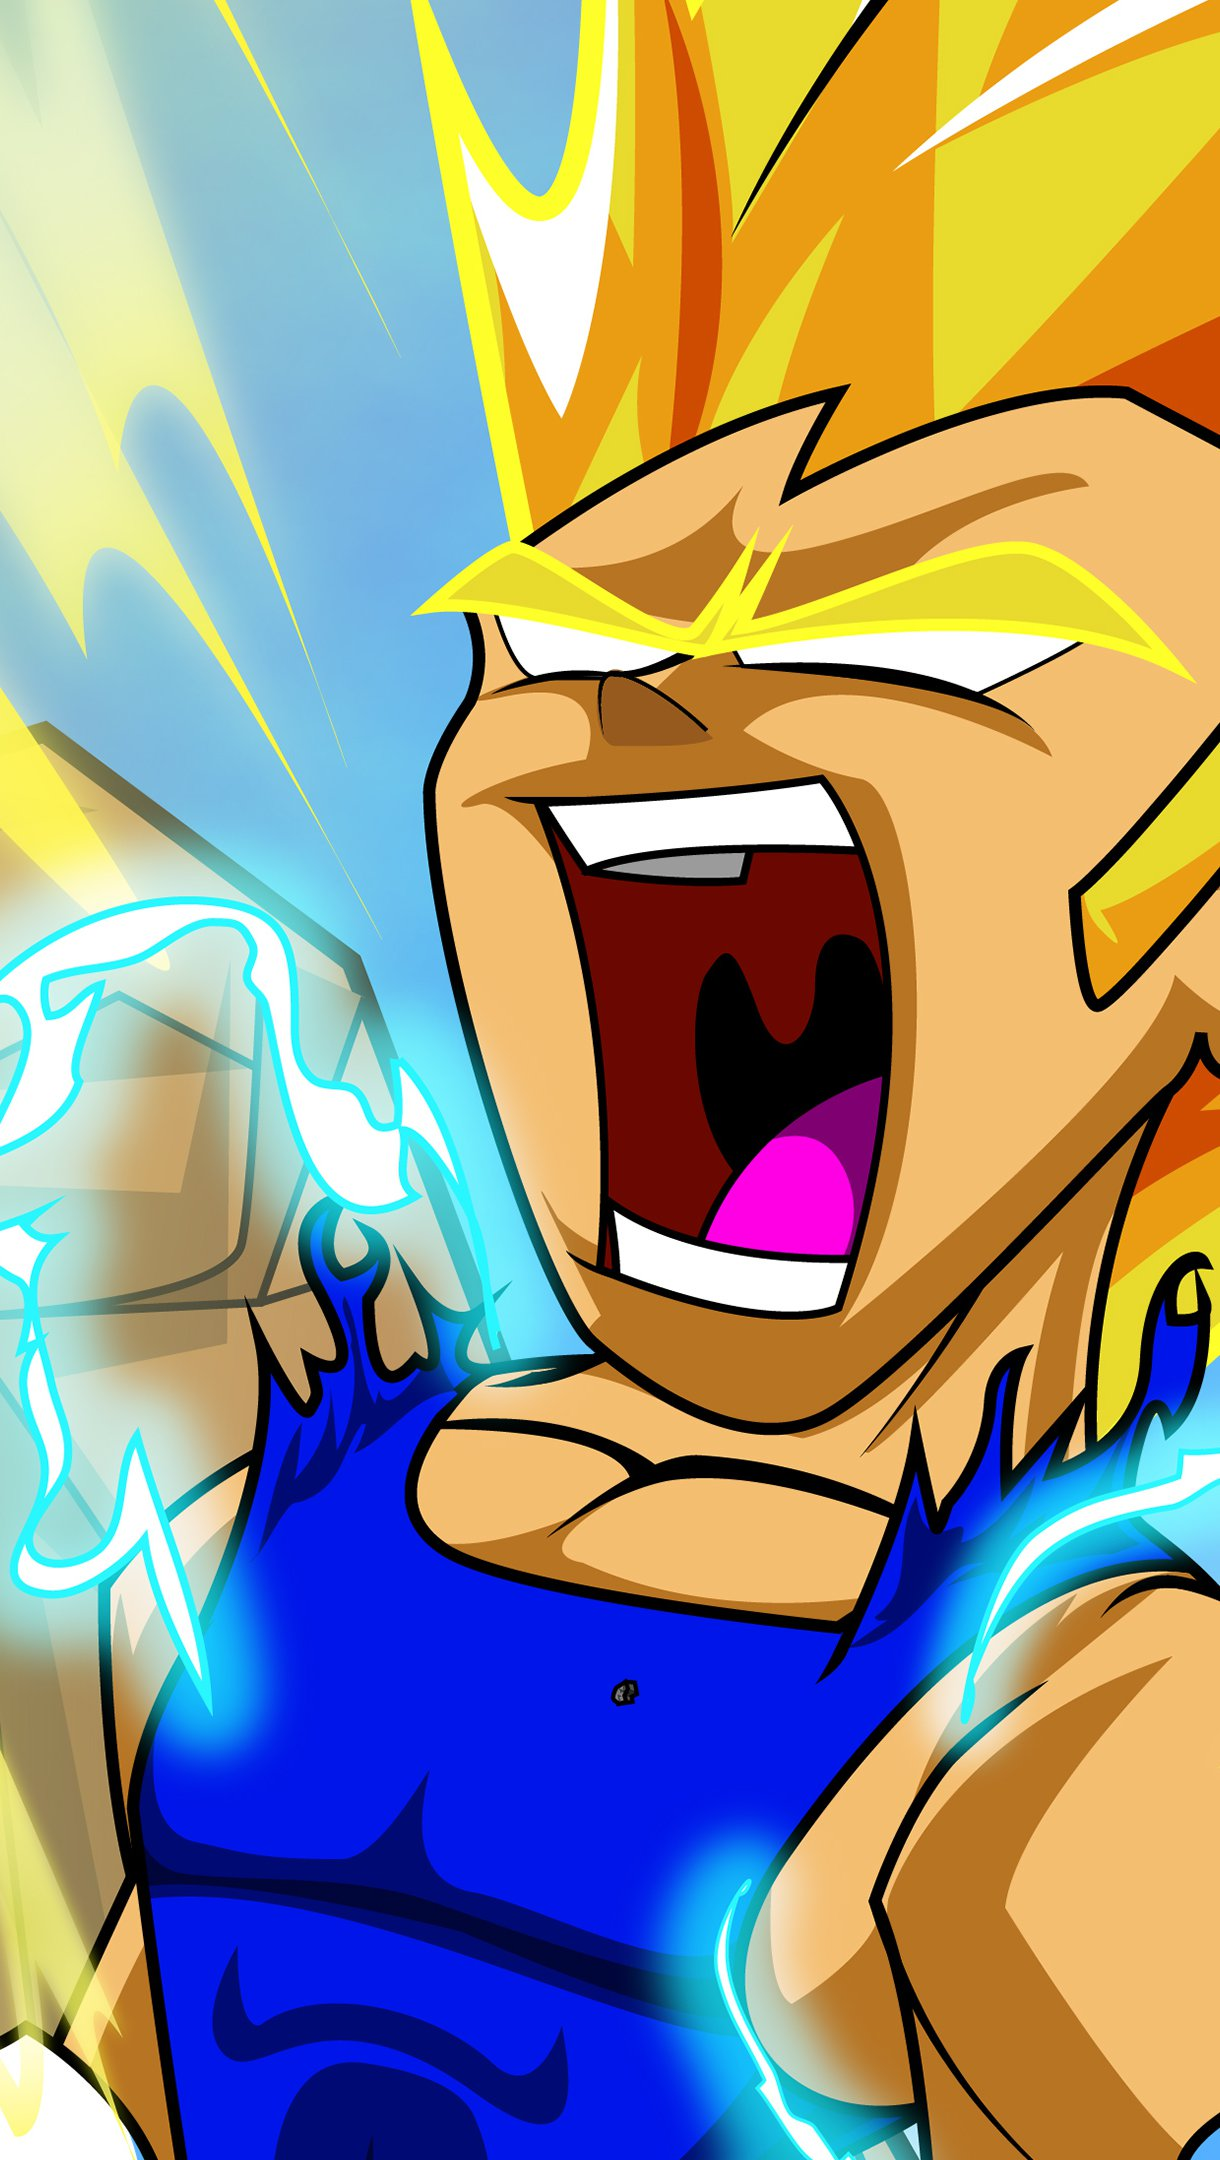 Fondos de pantalla Anime Vegeta Dragon Ball Vertical